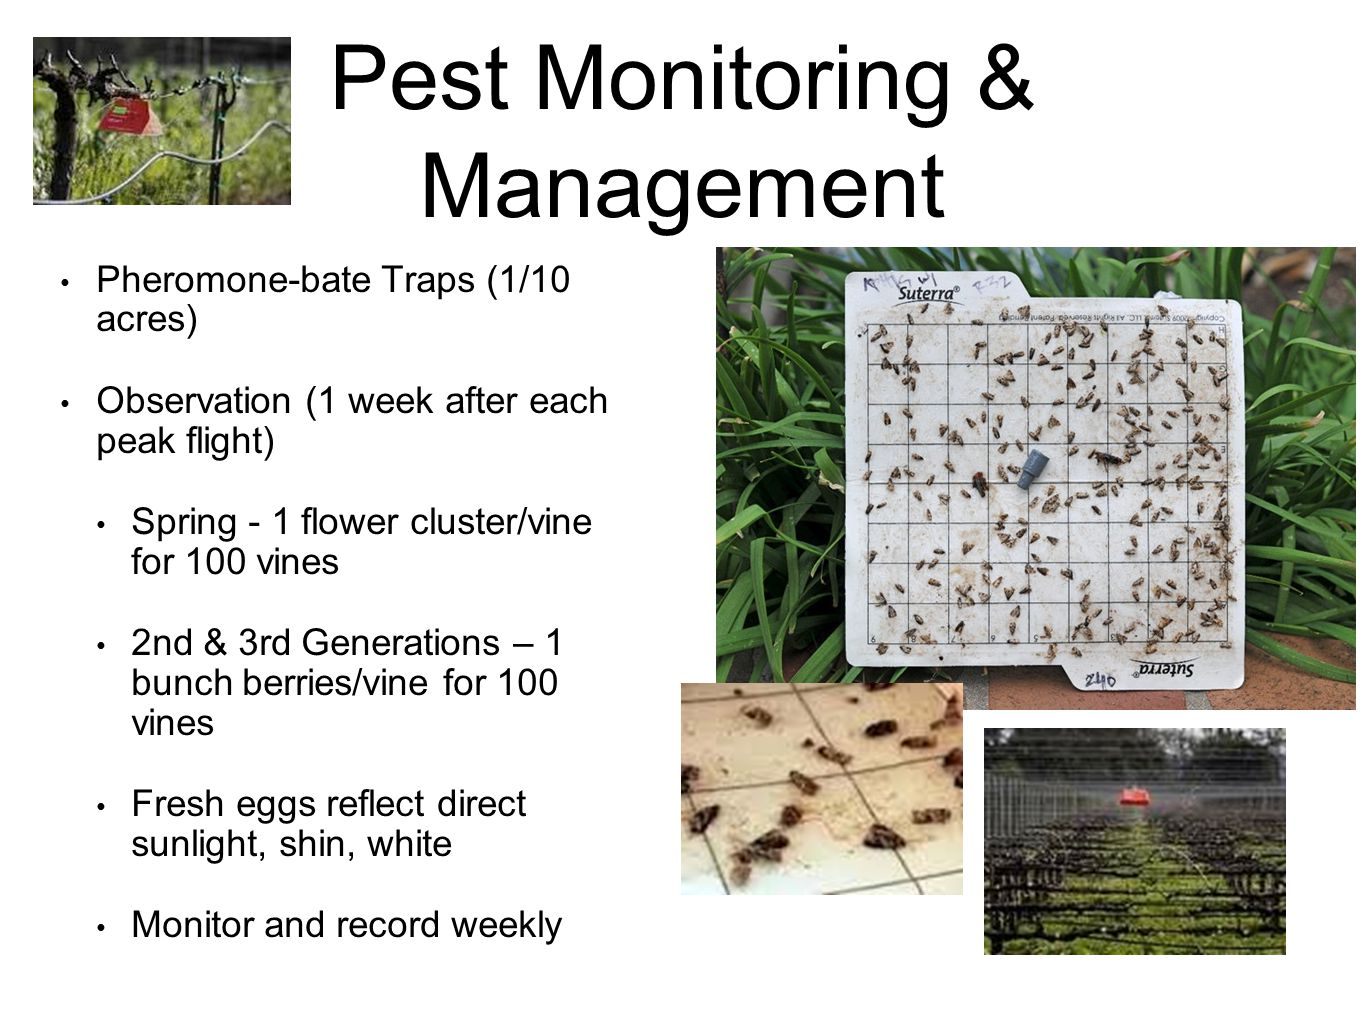 Pest Monitoring & Management Pheromone-bate Traps (1/10 acres) Observation (1 week after each peak flight) Spring - 1 flower cluster/vine for 100 vine